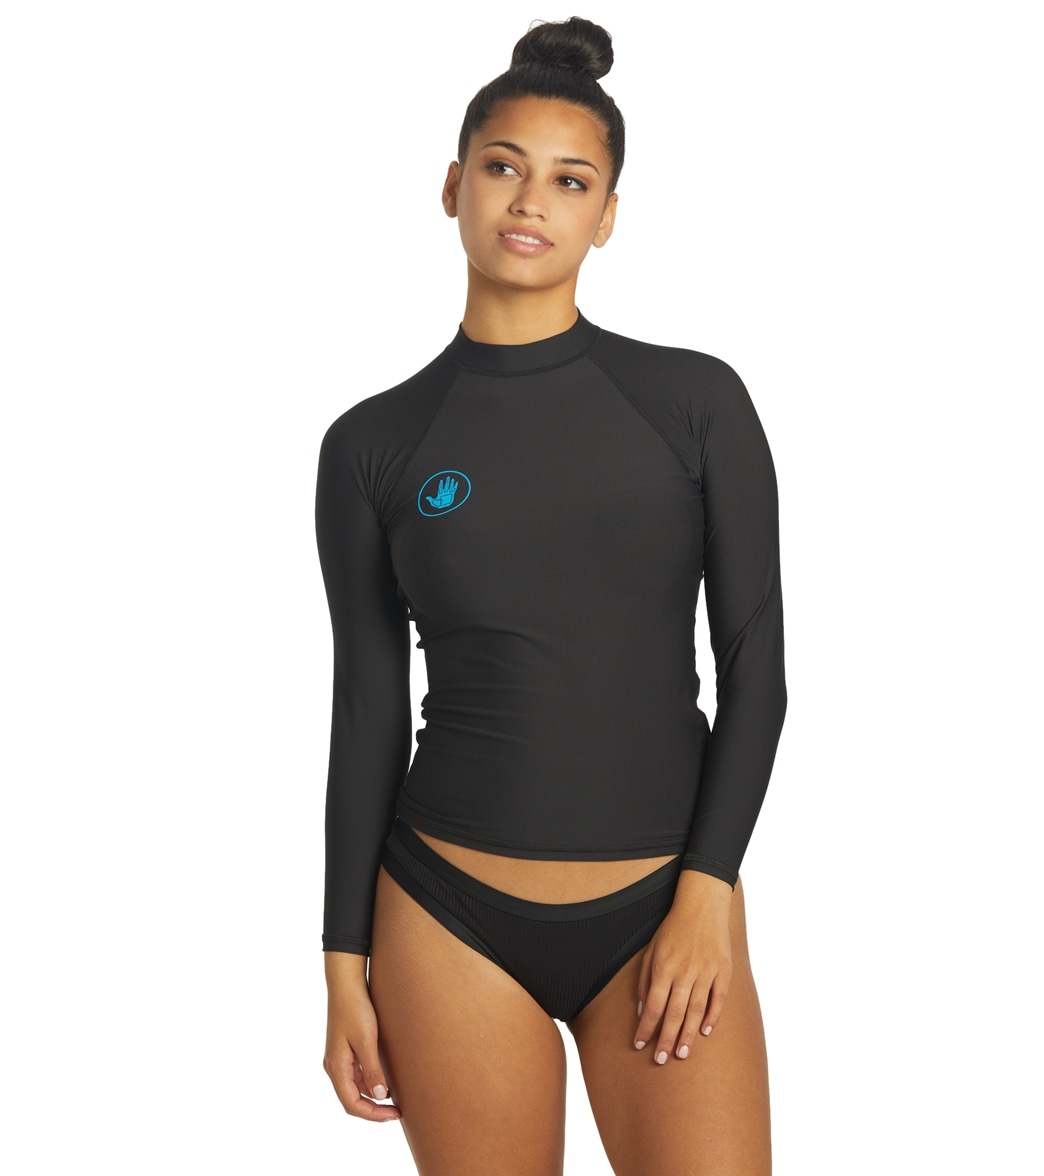 c6e7a333317 Body Glove Women s Basic Long Sleeve Fitted Rash Guard at SwimOutlet.com